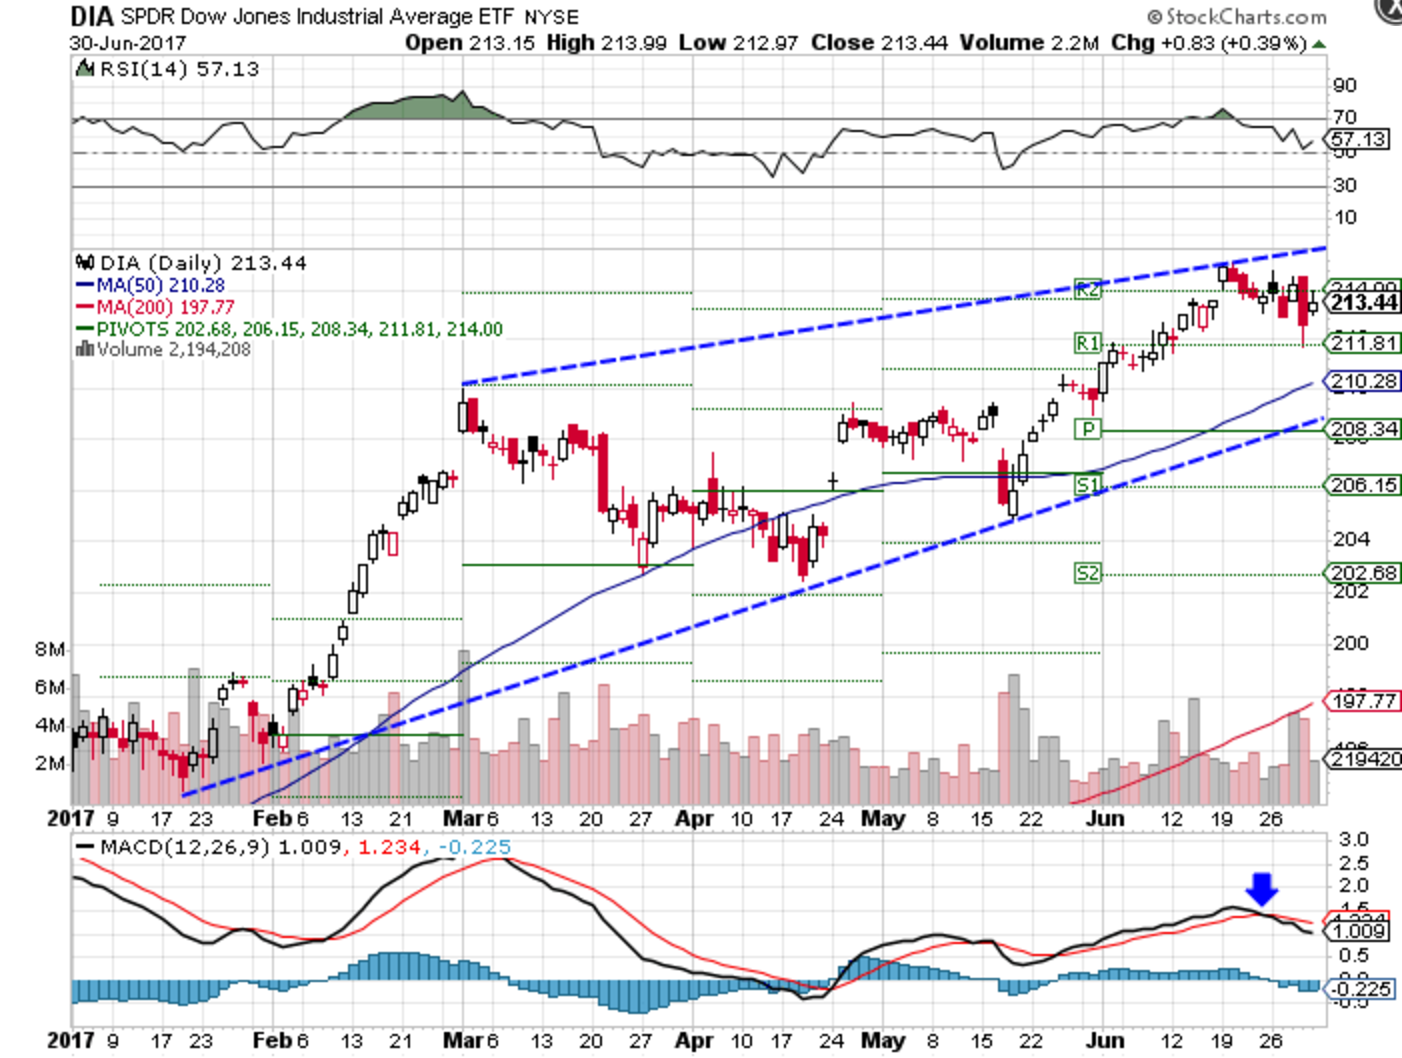 Technical chart showing the year-to-date performance of the SPDR Dow Jones Industrial Average ETF (DIA)